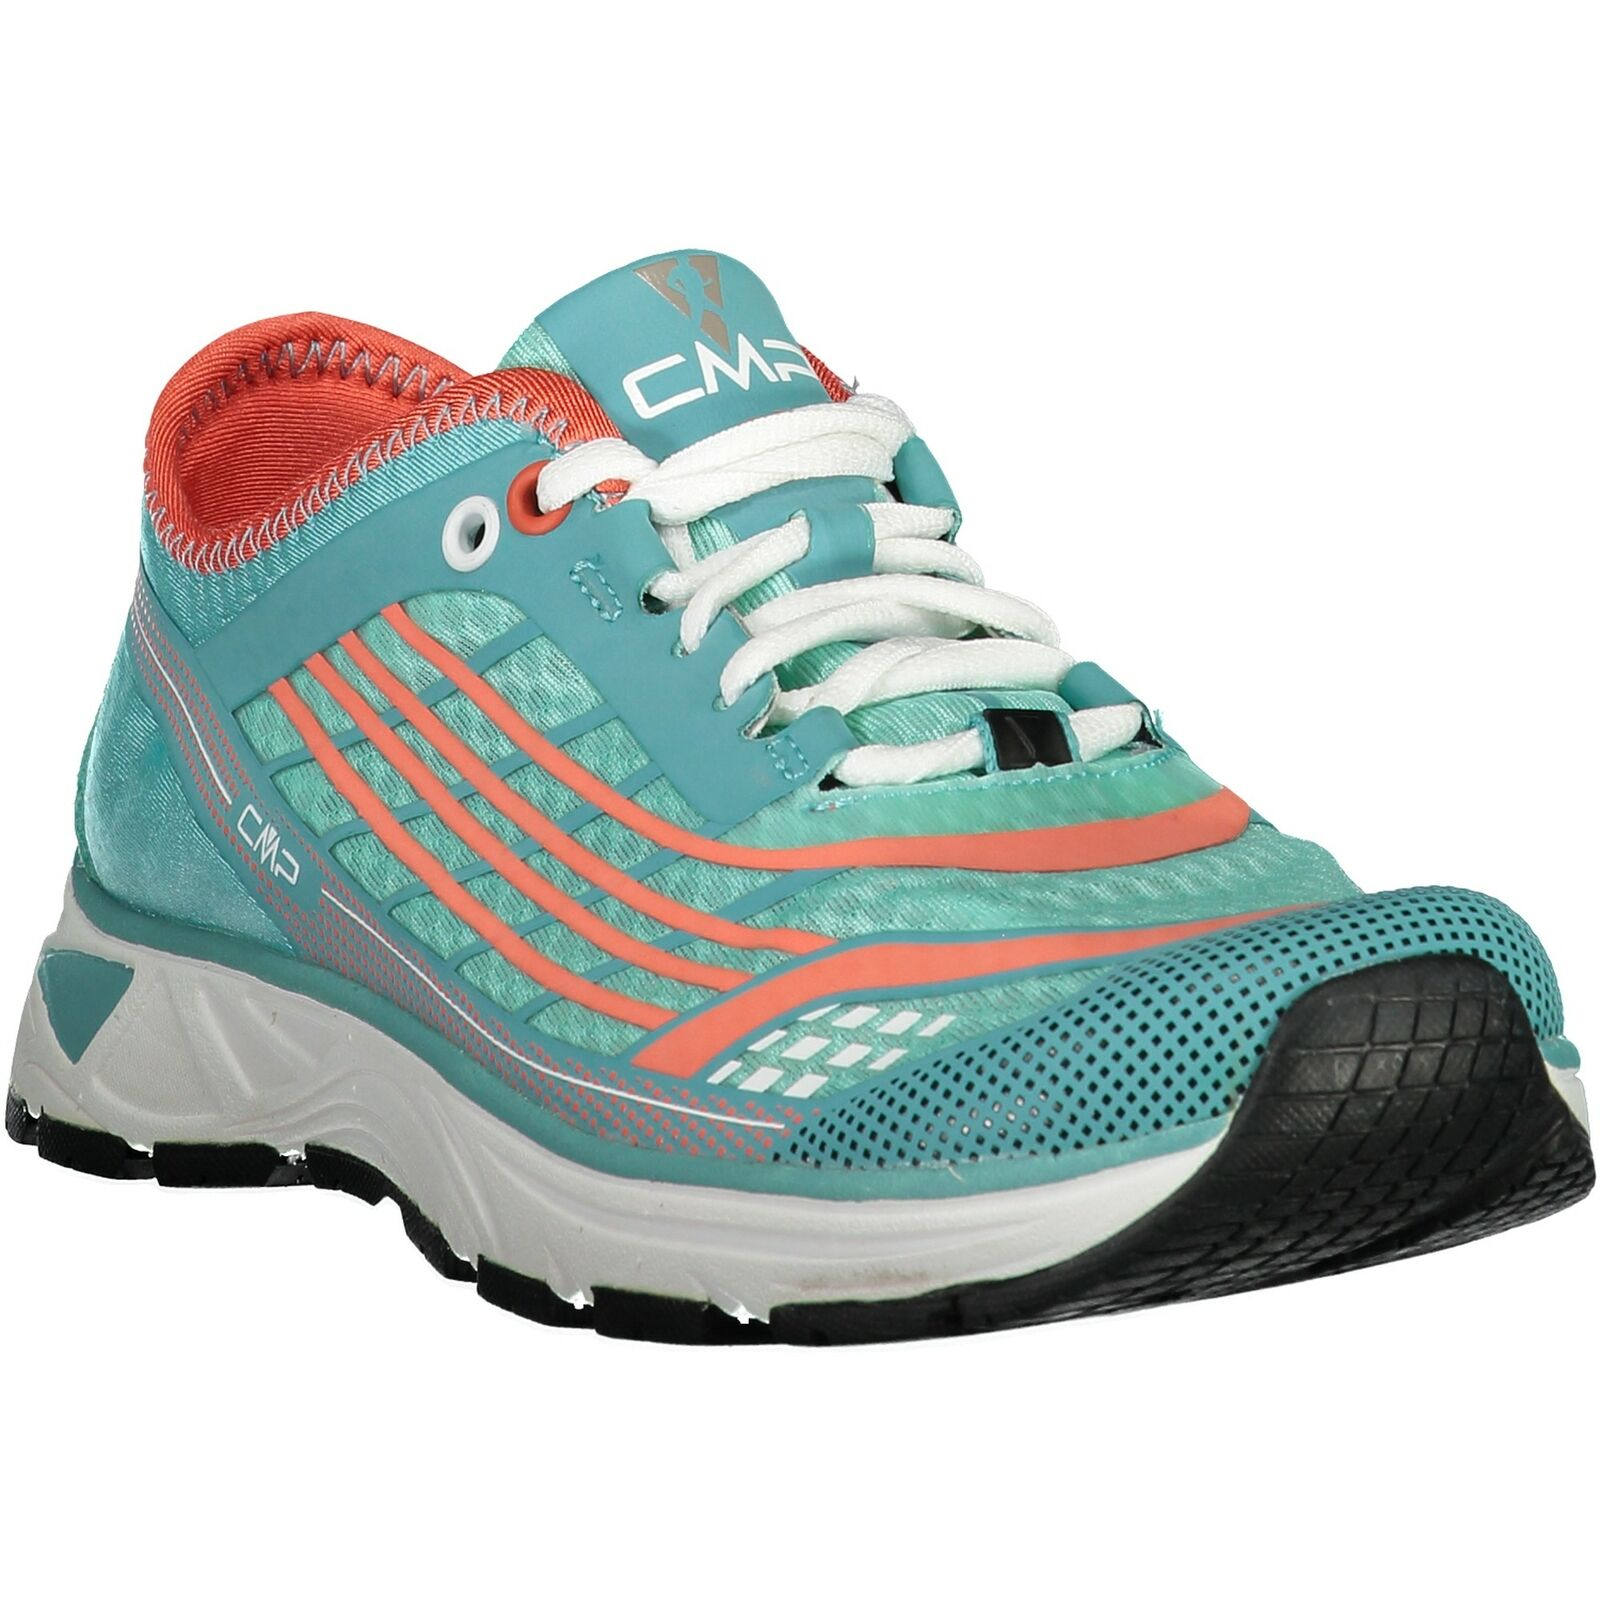 CMP  Running shoes Sports shoes Libre Wmn Running shoes Turquoise Lightweight Plain All Mesh  factory direct